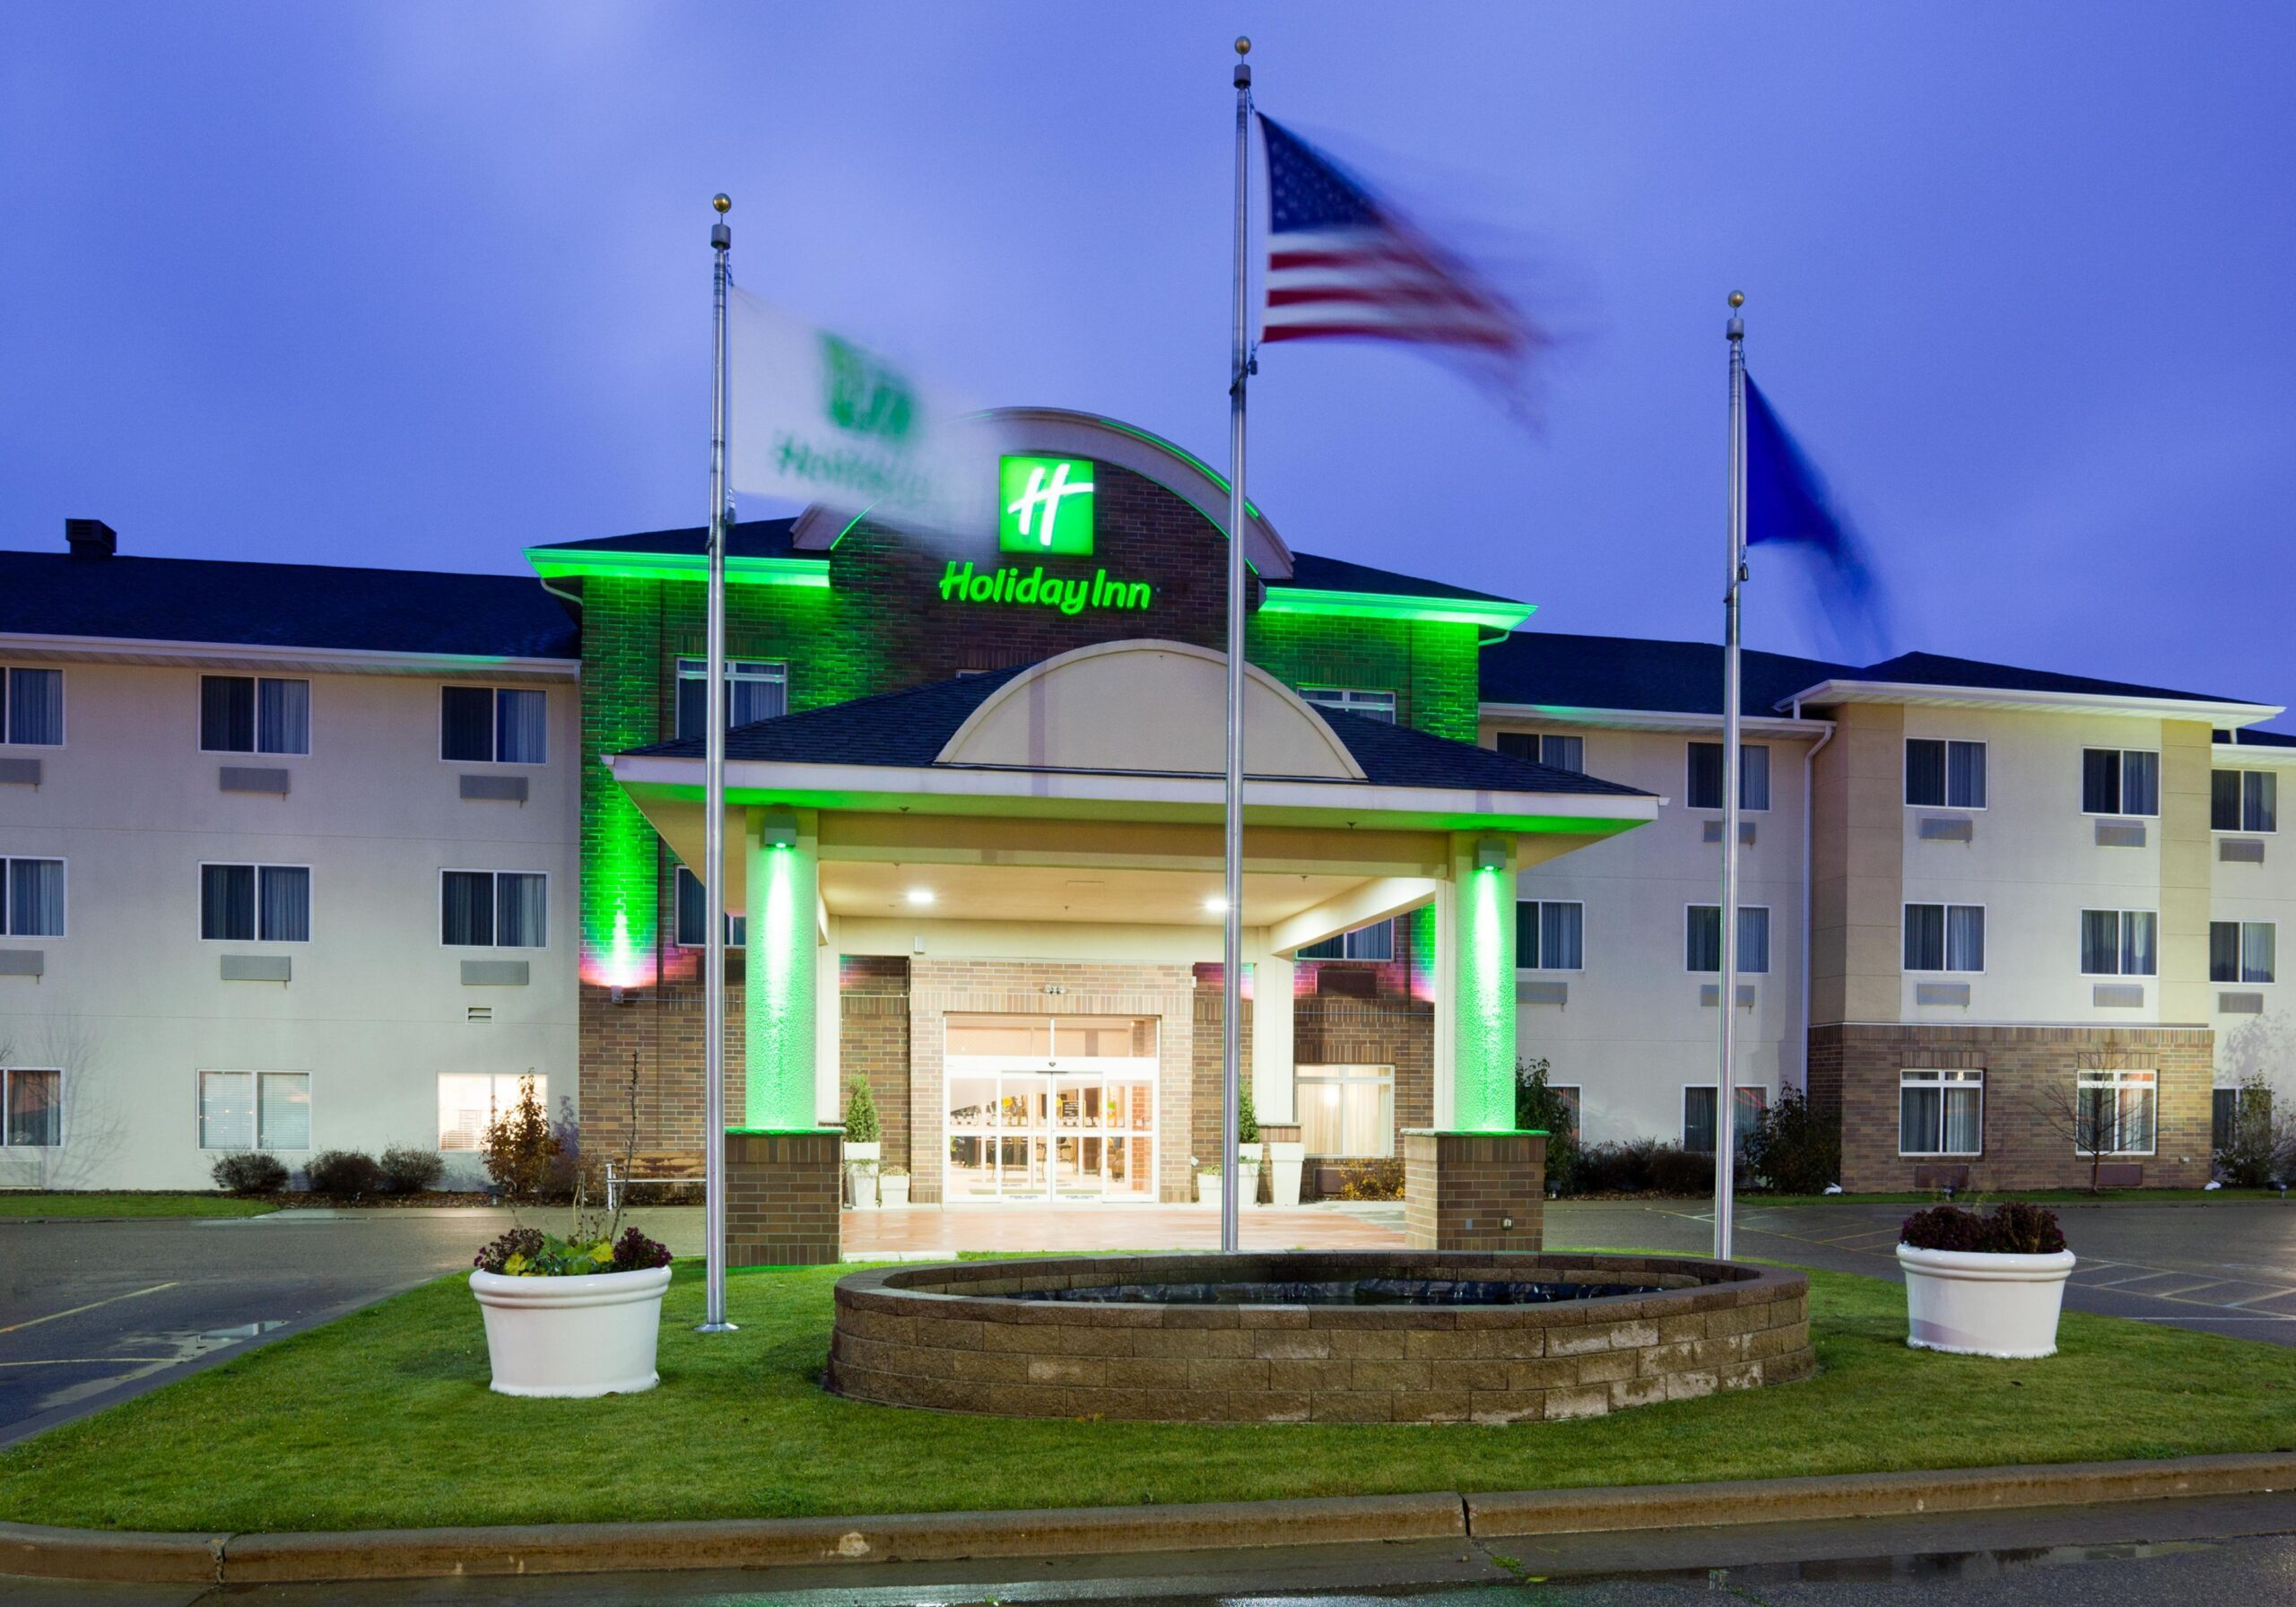 Holiday-Inn-scaled.jpg